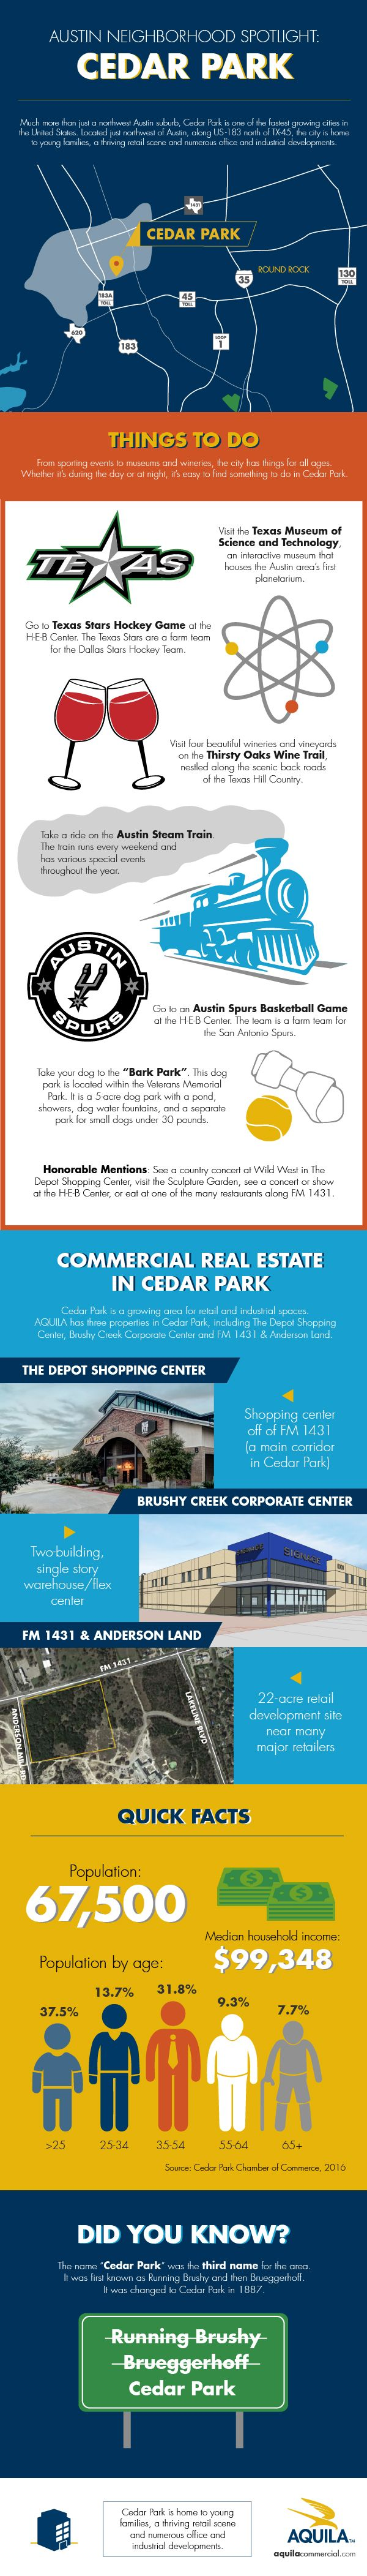 Much more than just a northwest austin suburb cedar park is one of the fastest growing cities in the united states located just northwest of austin